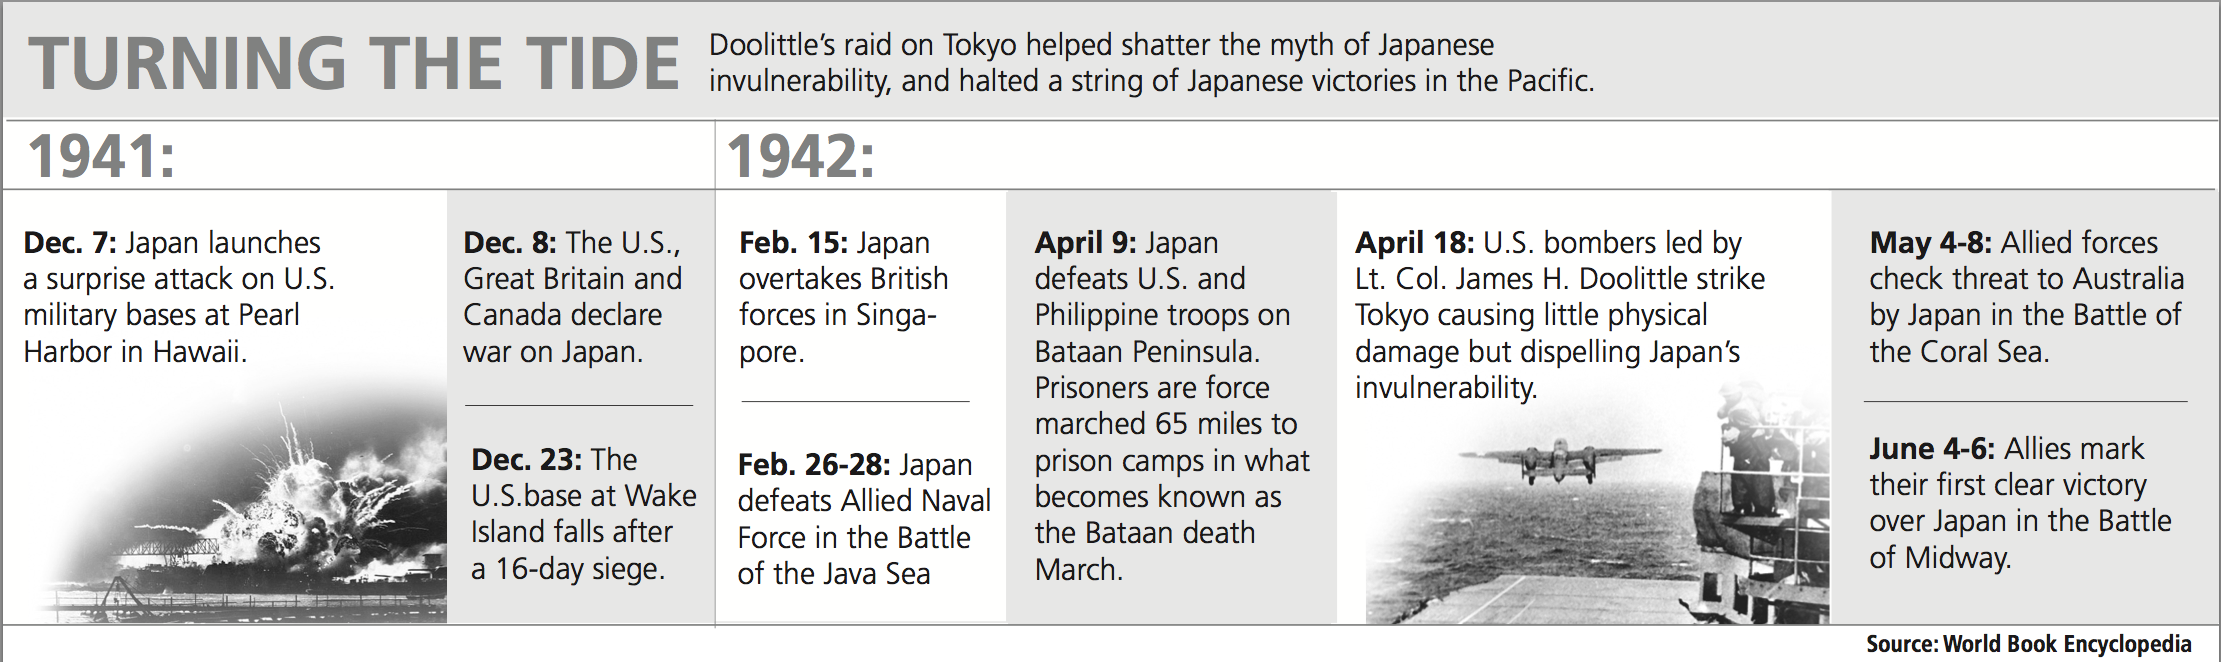 Turning the Tide Doolittle's raid on Tokyo Infographic created by JA Creative Group